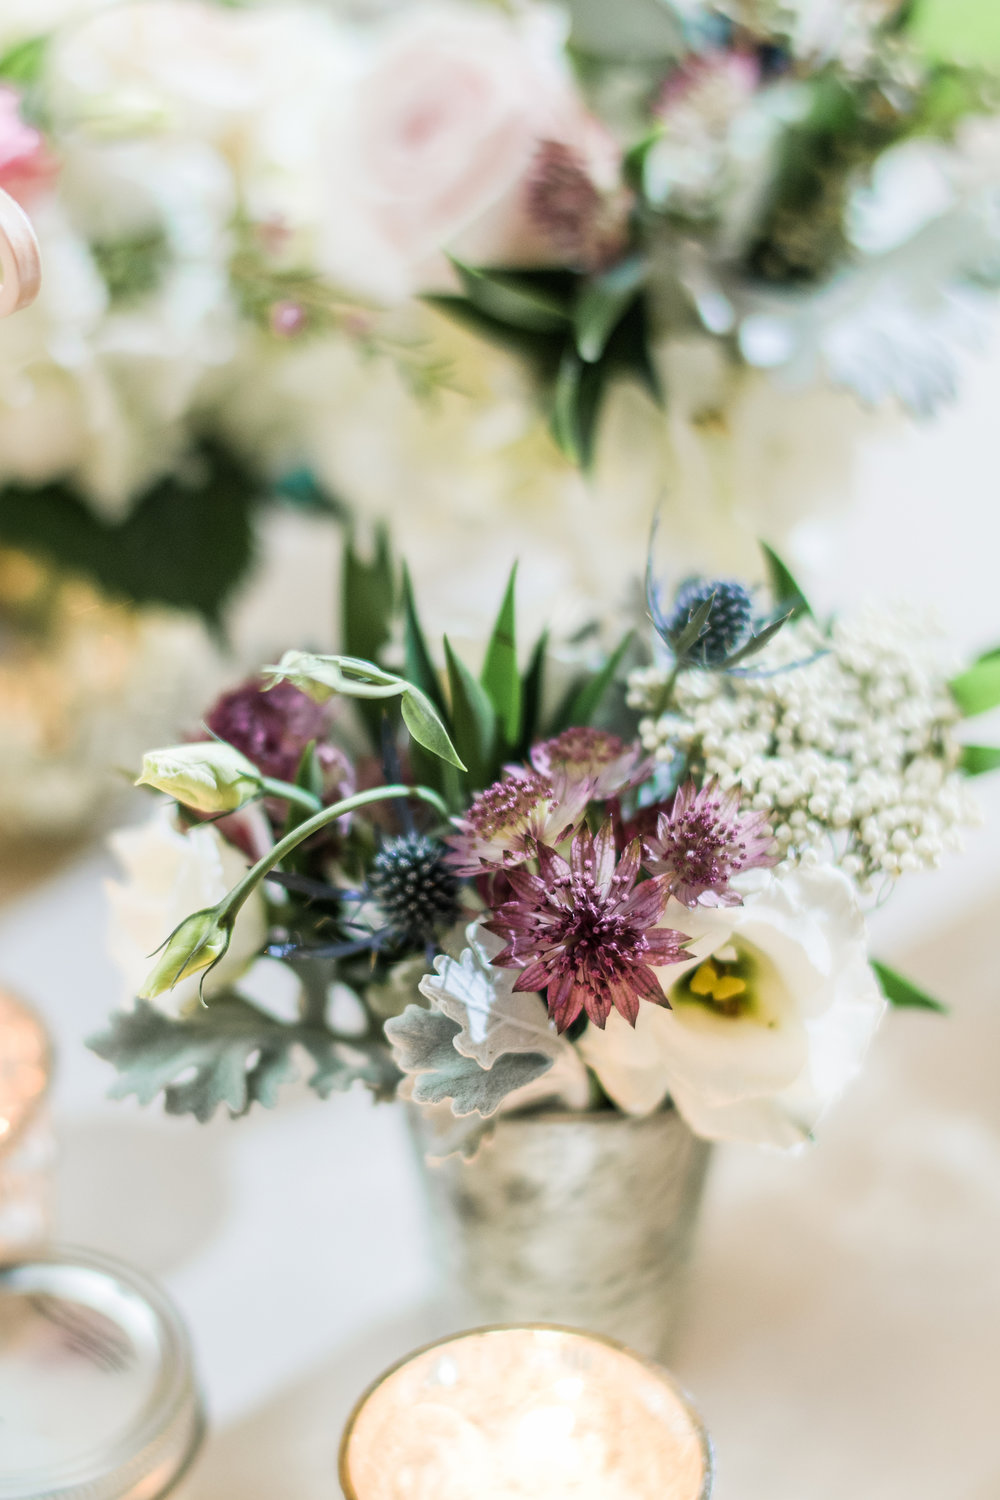 Stephanie-messick-steph-silver-votive-blue-mauve-grey-white-flowers-stone-tower-winery-jmorrisflowers.jpg